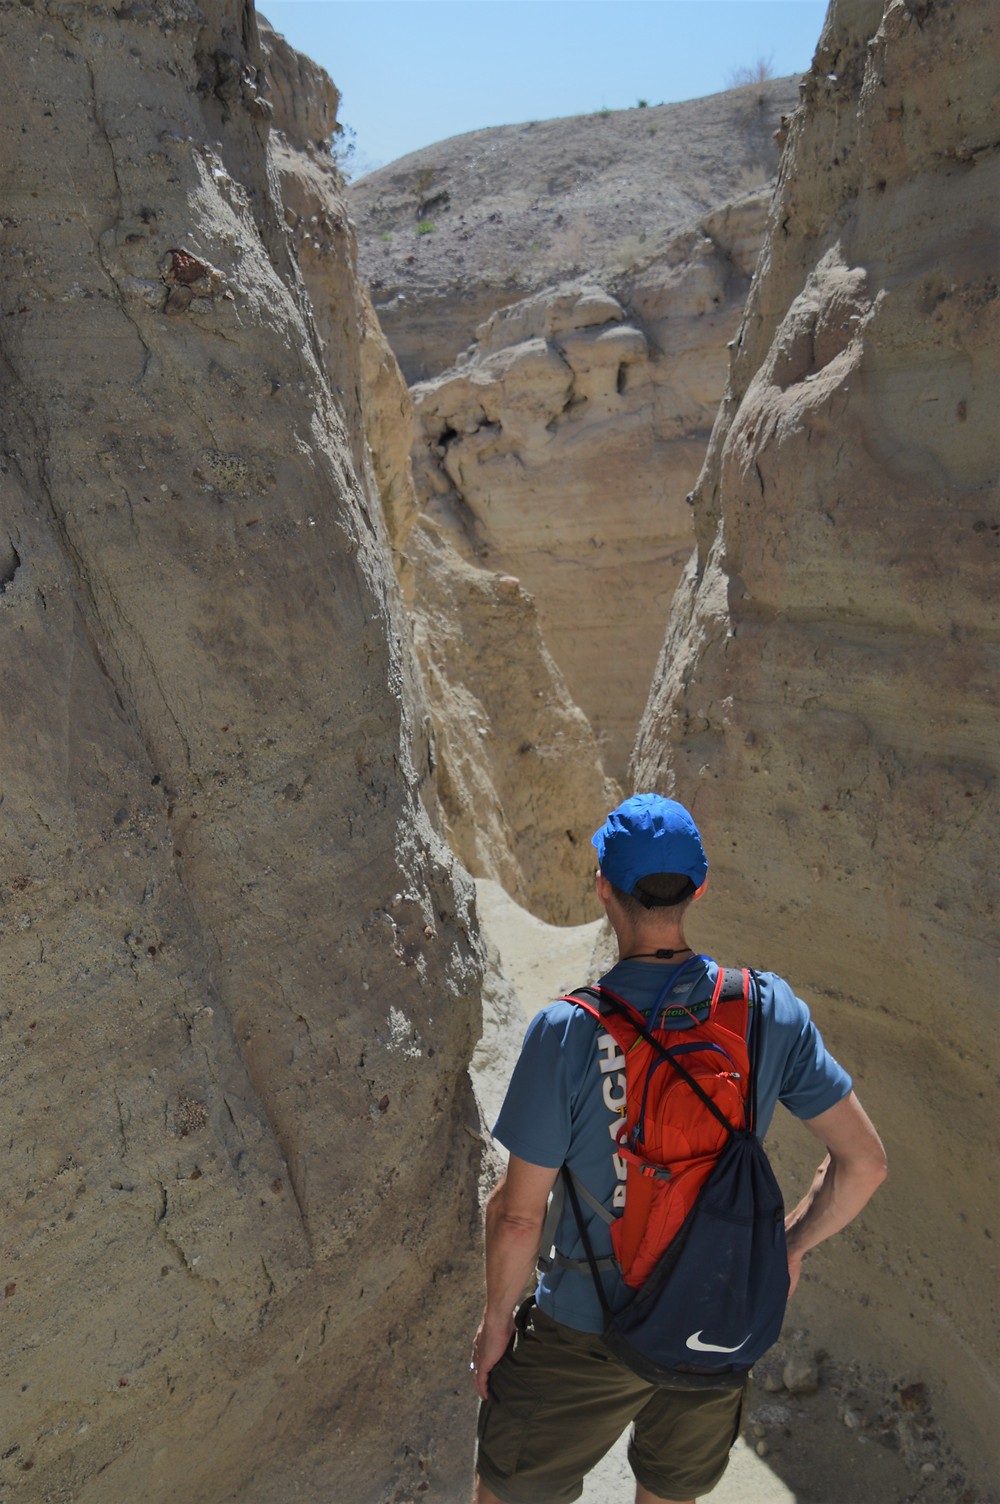 Smooth walls eroded by water in slot canyons along the Calcite Mine Loop at Anza-Borrego State Park